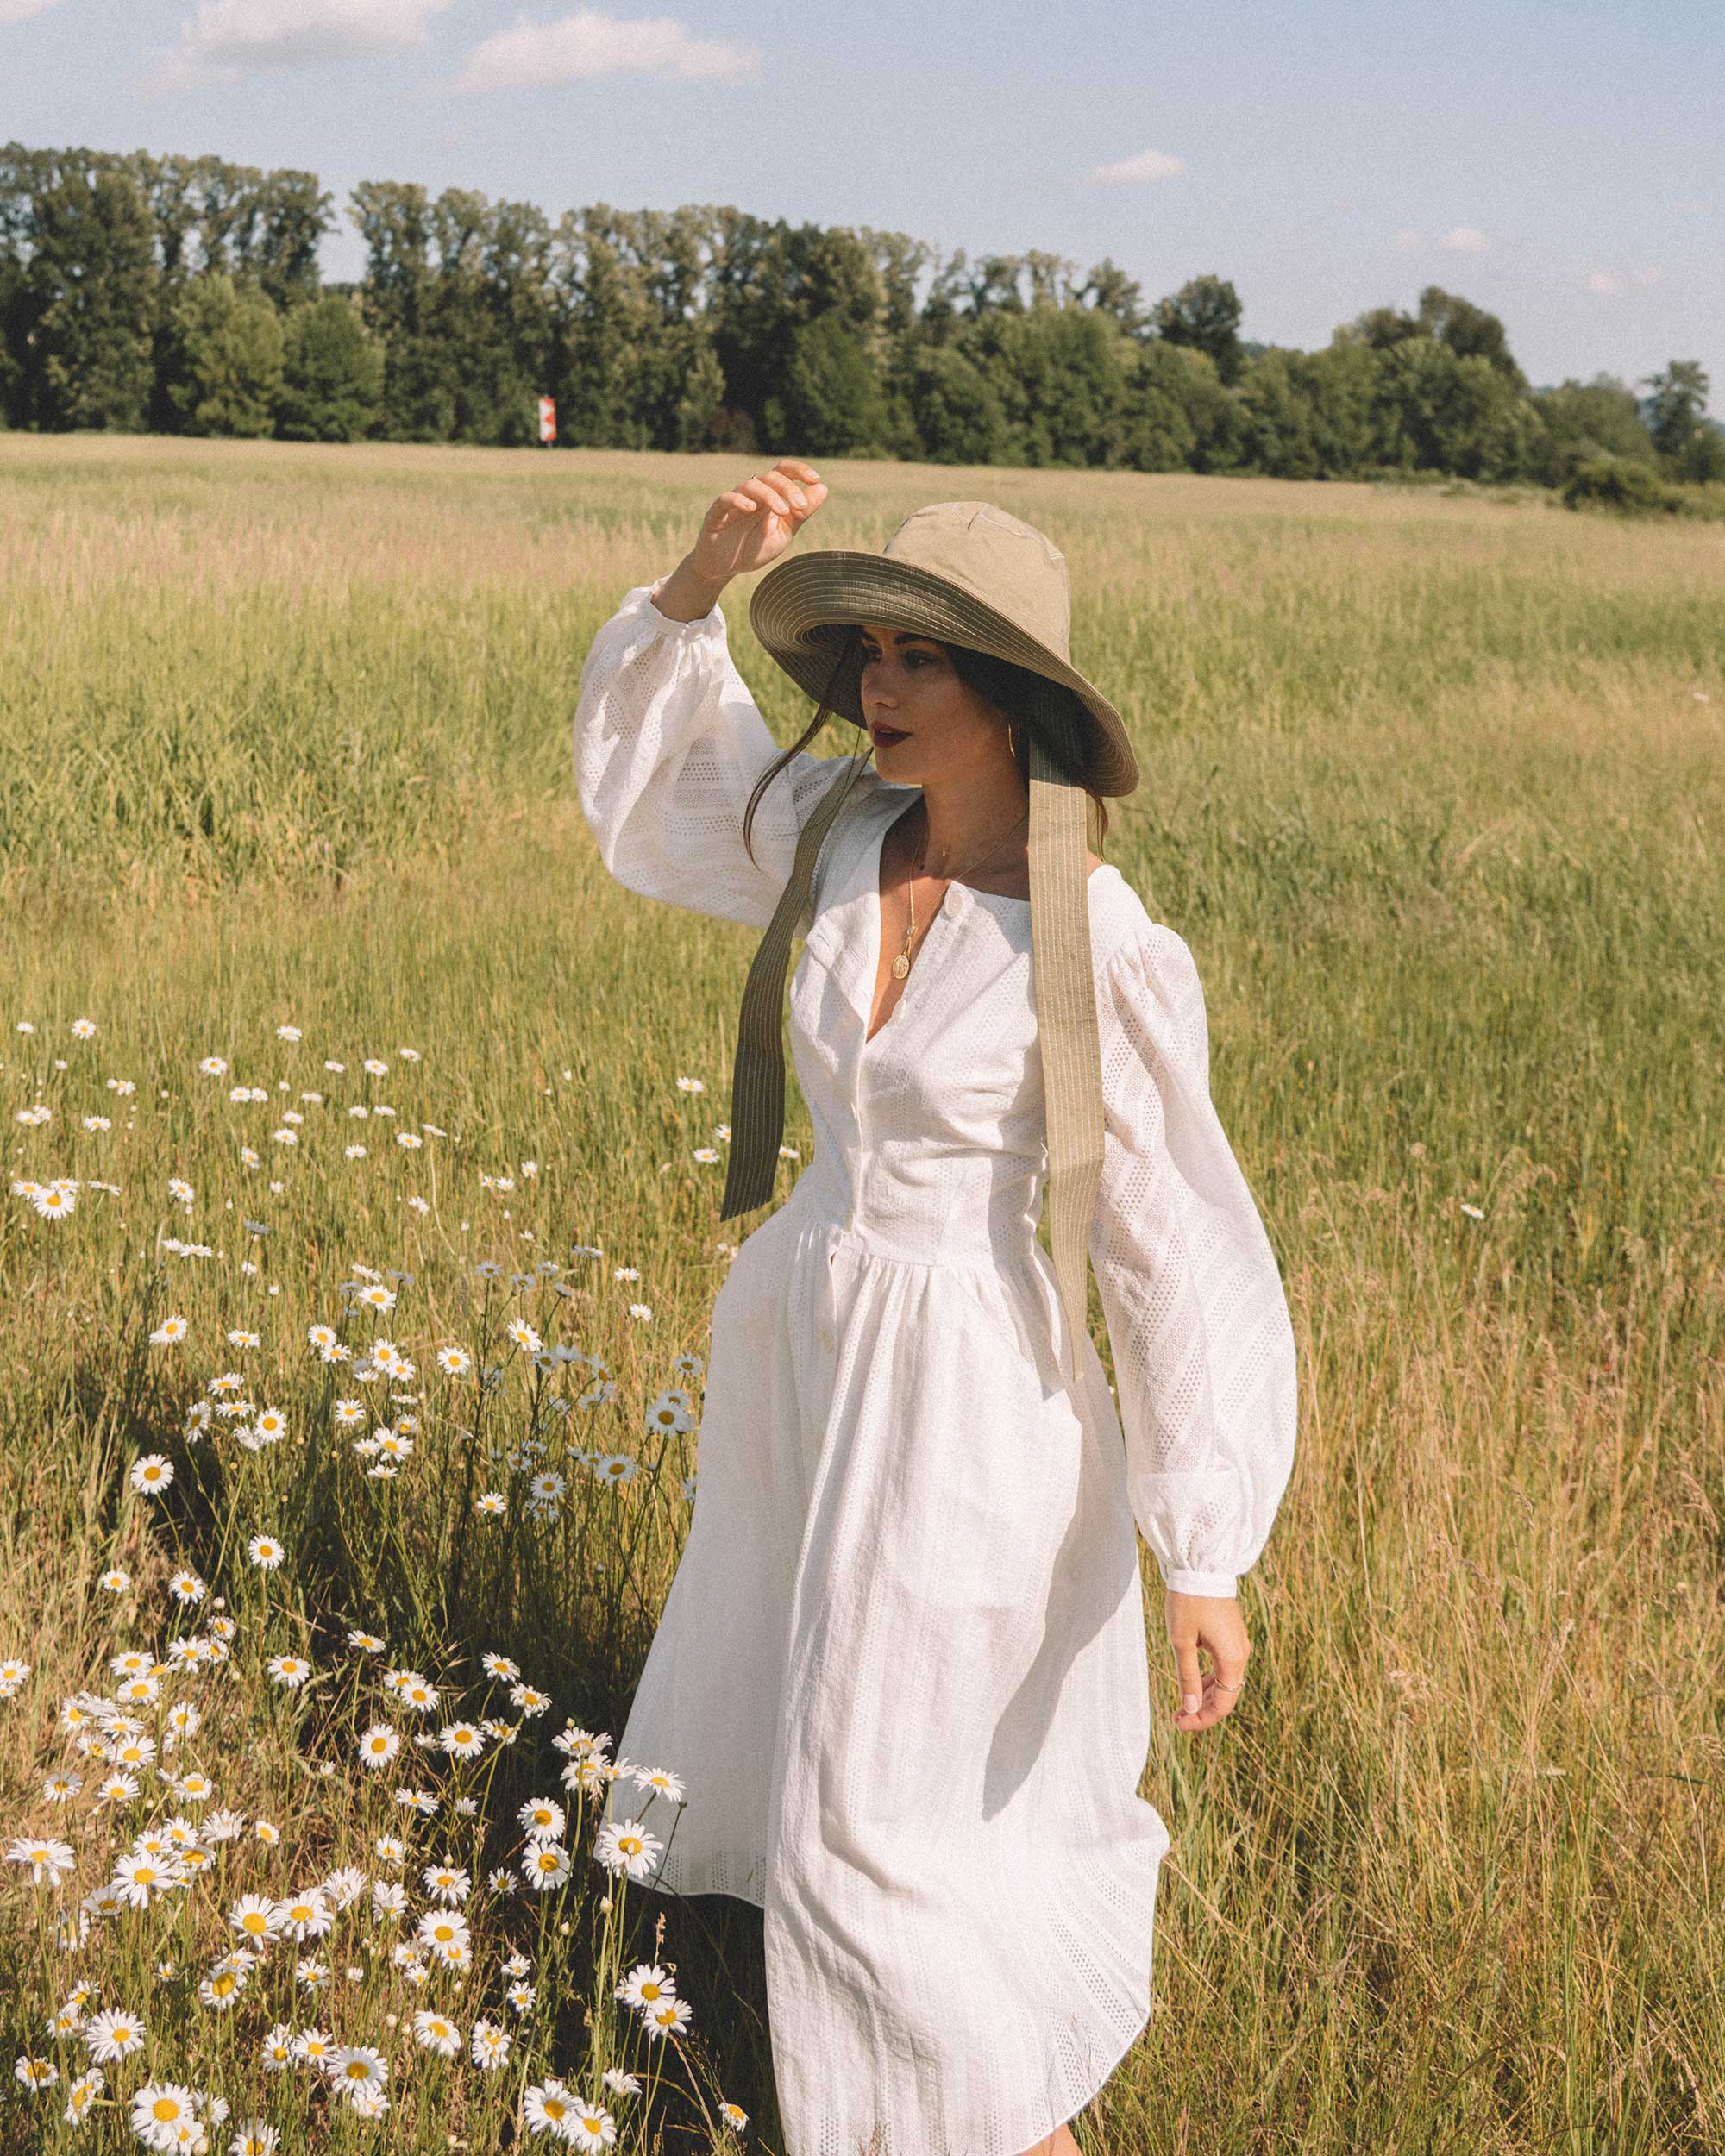 Sarah Butler of Sarah Styles wearing Poustovit White Maxi Dress with billowy sleeves and Ganni wide brim hat in Seattle | @sarahchristine -6.jpg